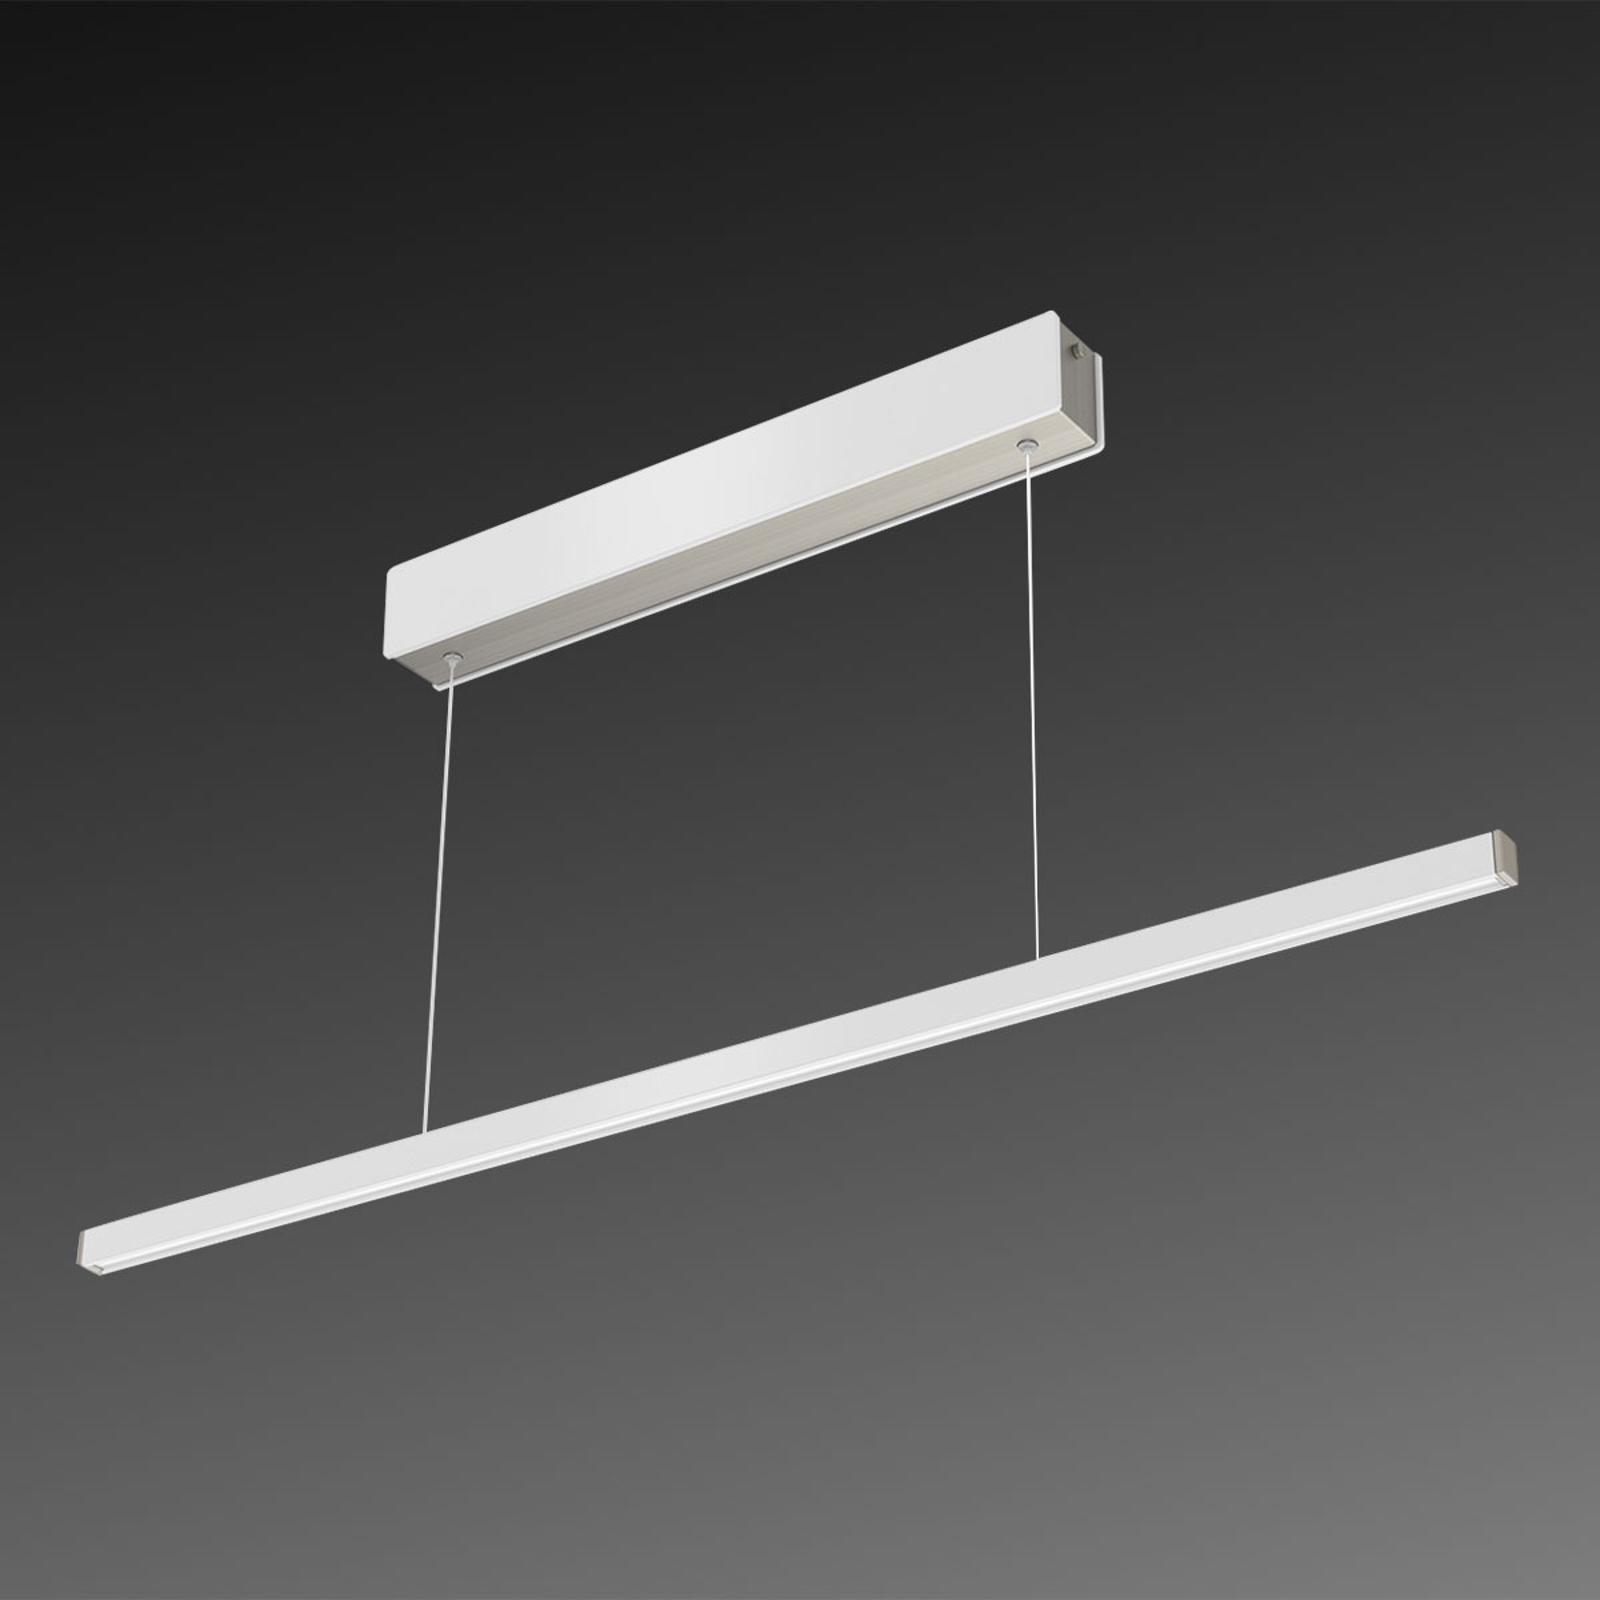 Suspension LED Orix, blanc, 90 cm de long